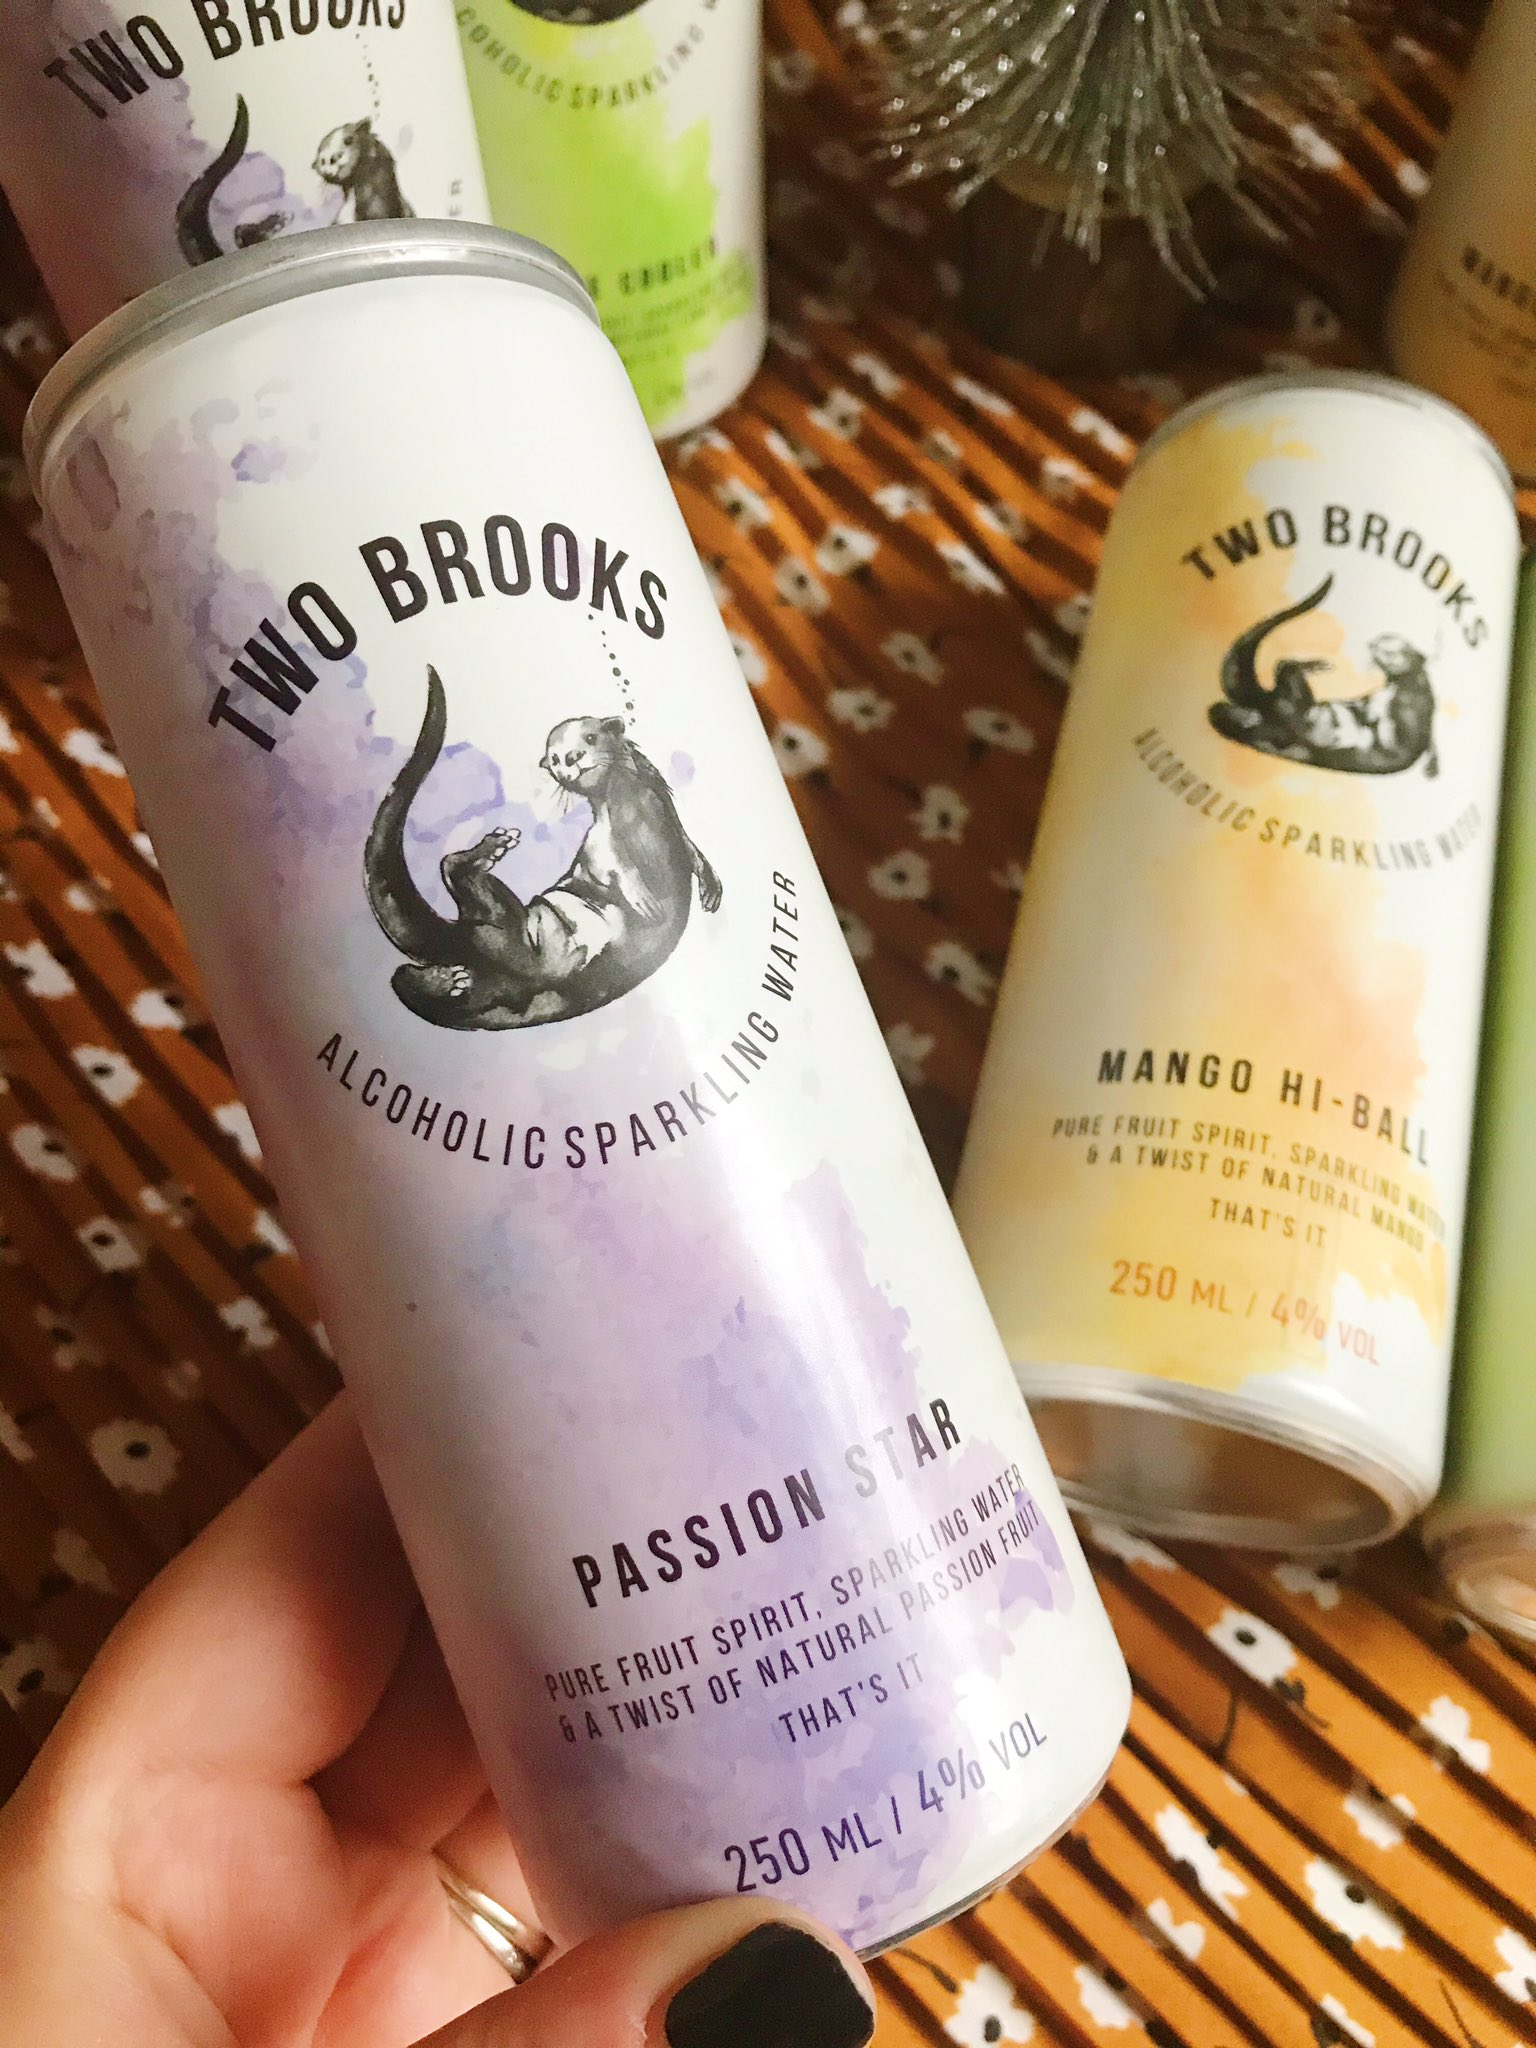 Two Brooks passion star drink held up